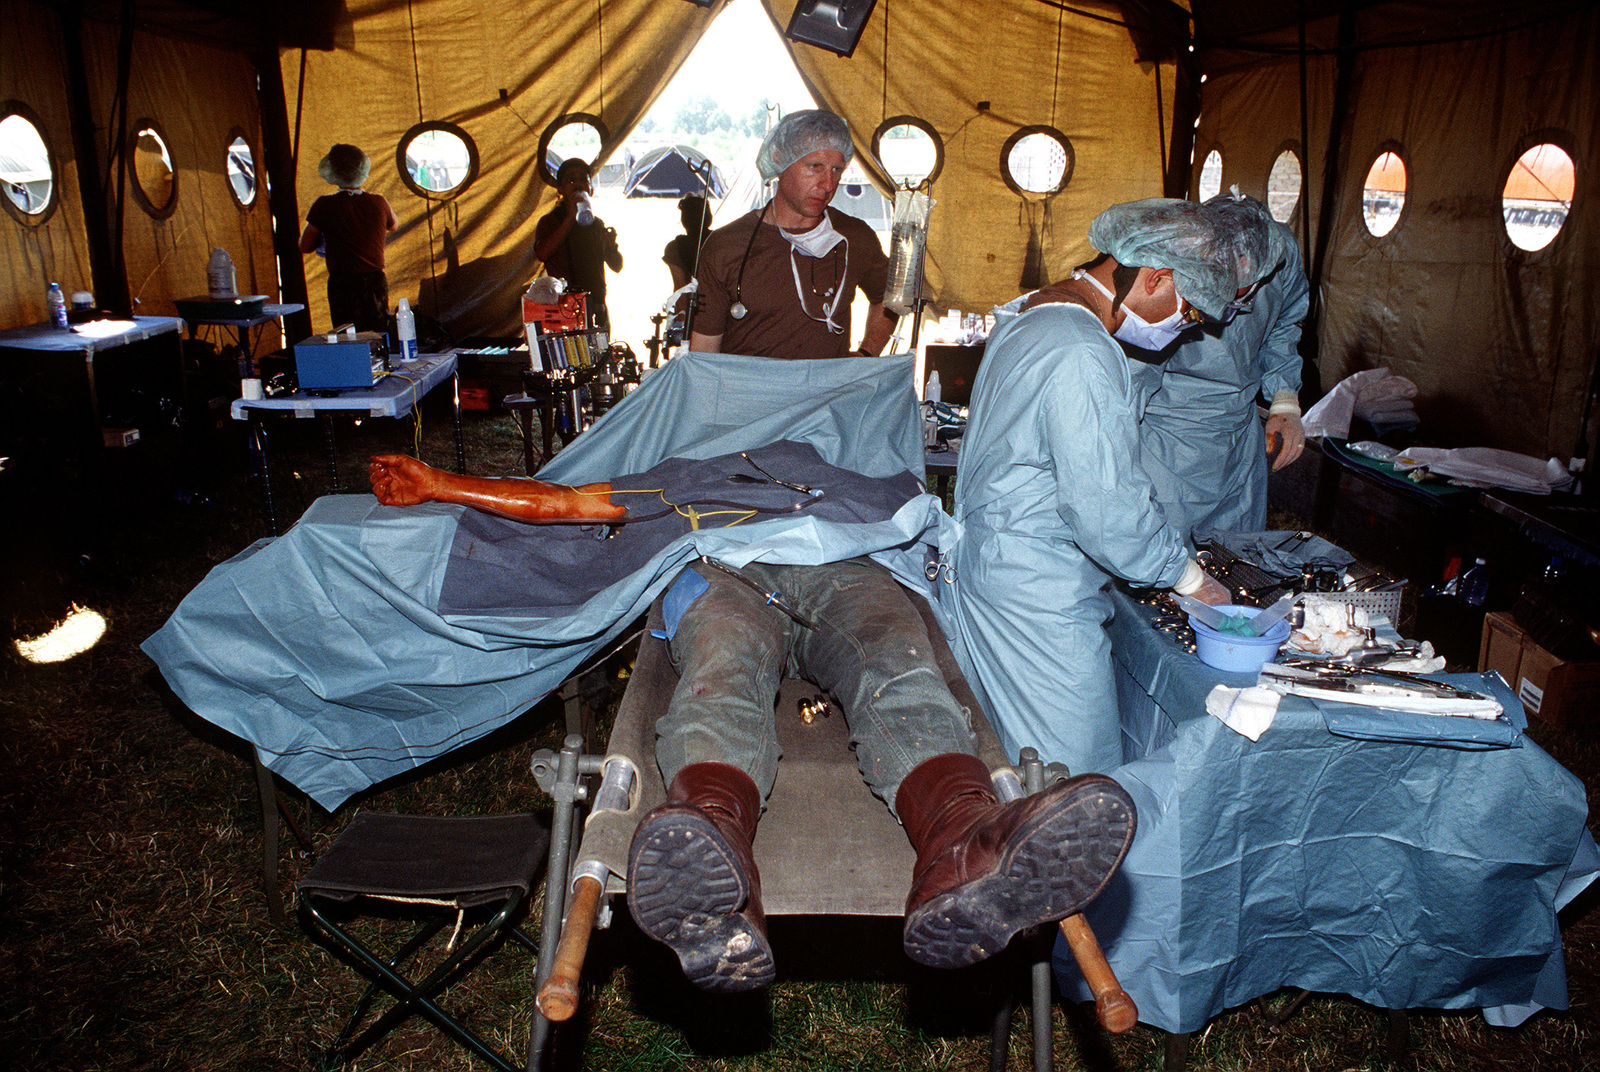 Members of the U.S. Air Force 52nd Medical Group, Spangdalem Air Base, Germany, perform mock surgery on a patient during a mass casualty exercise